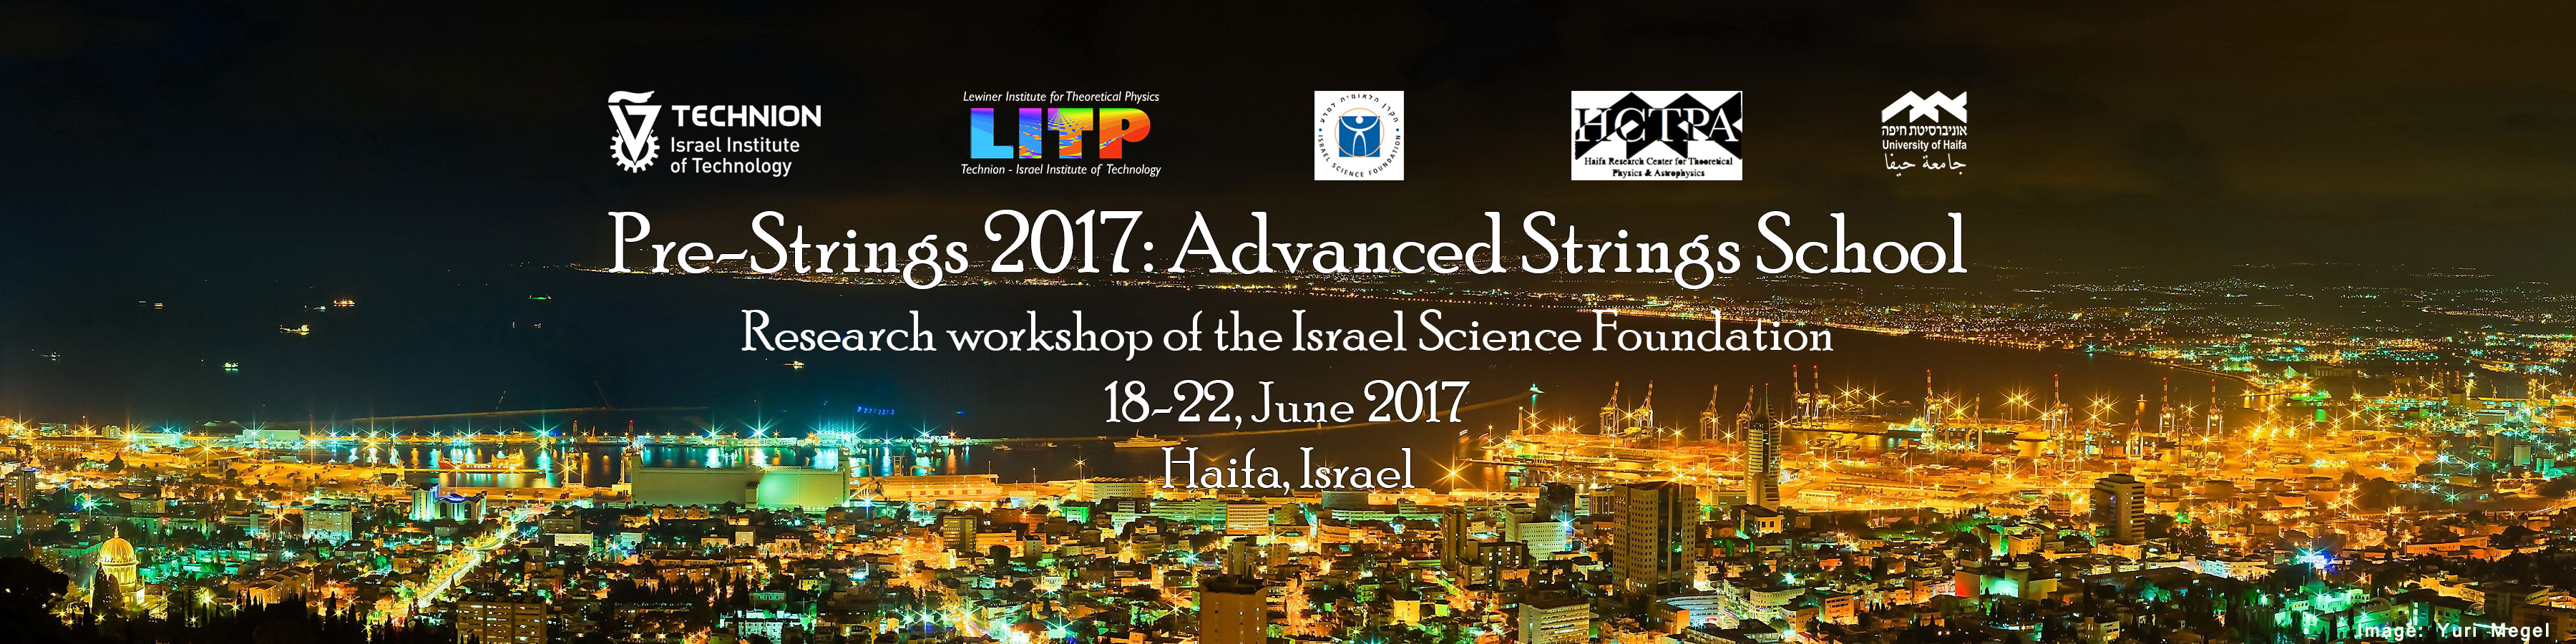 Pre strings 2017: advanced strings school 18-22.6.2017 Haifa, Israel.